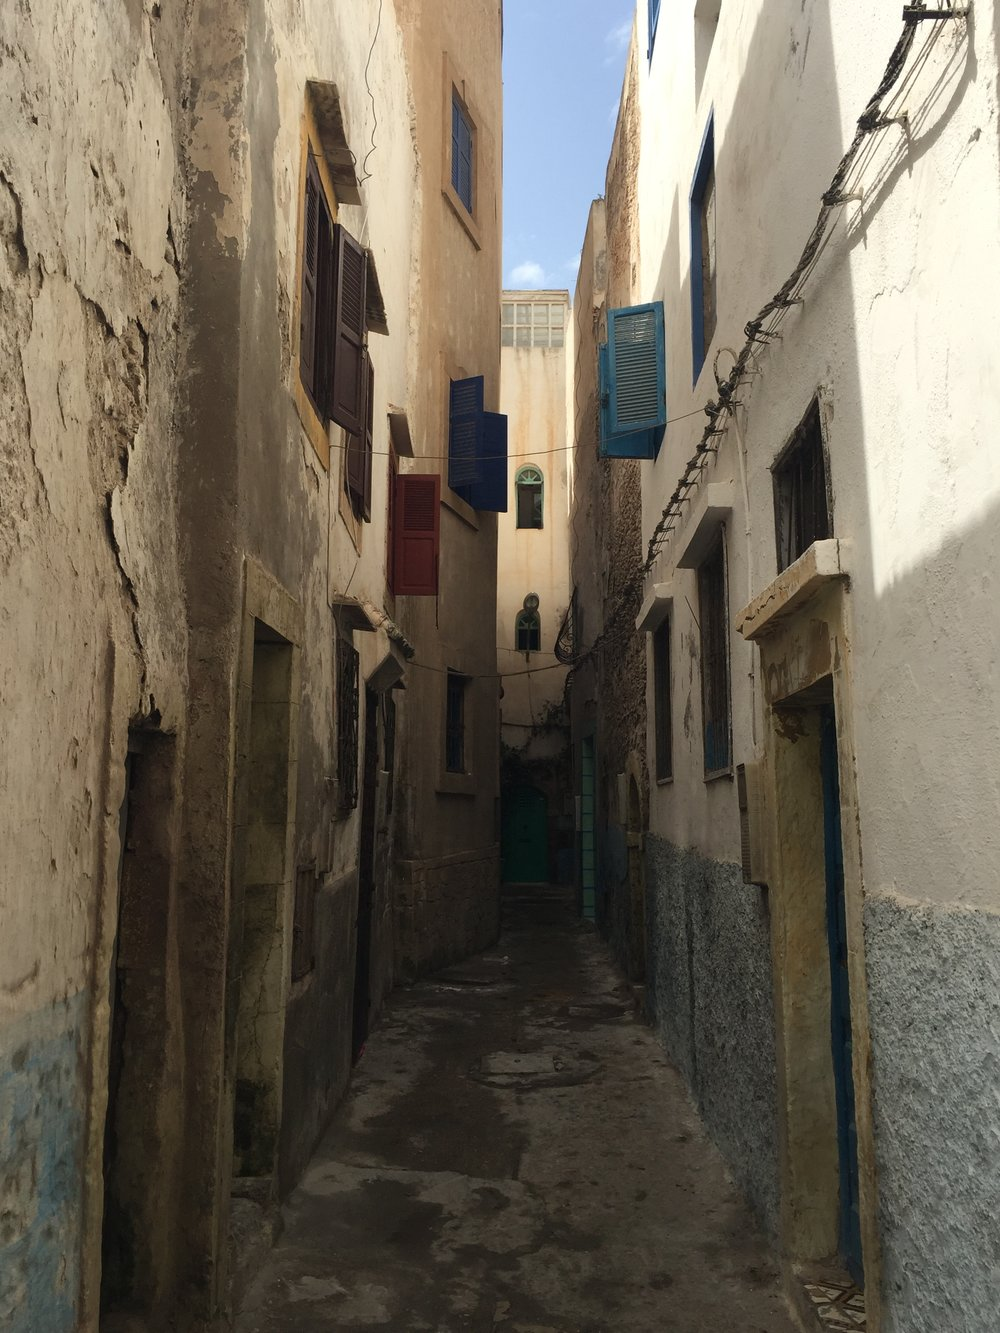 A typical street in Essaouira, Morocco